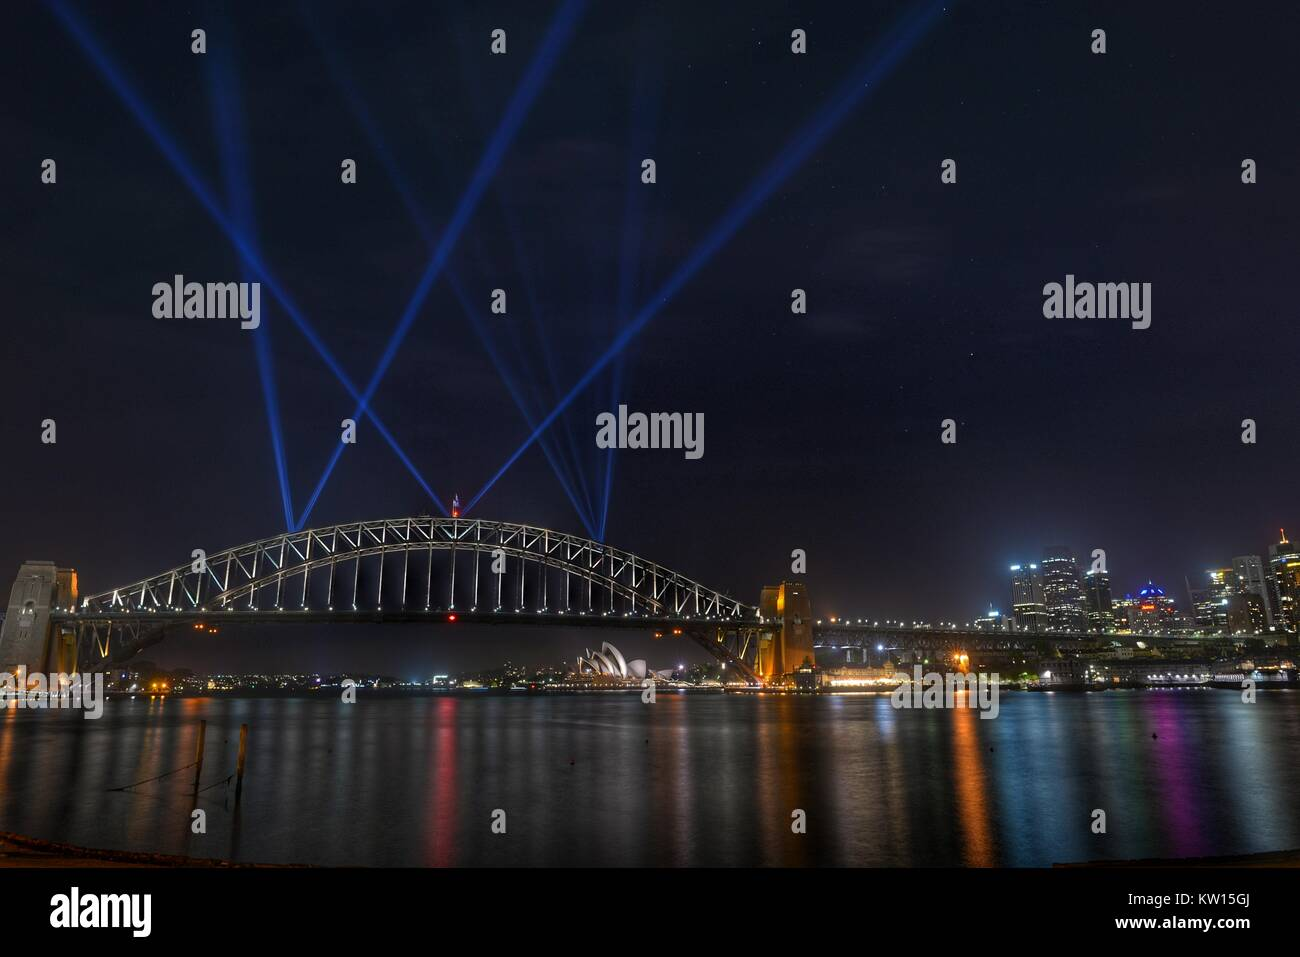 Testing the lights on the Sydney Harbour Bridge for New Years 2018 - Stock Image